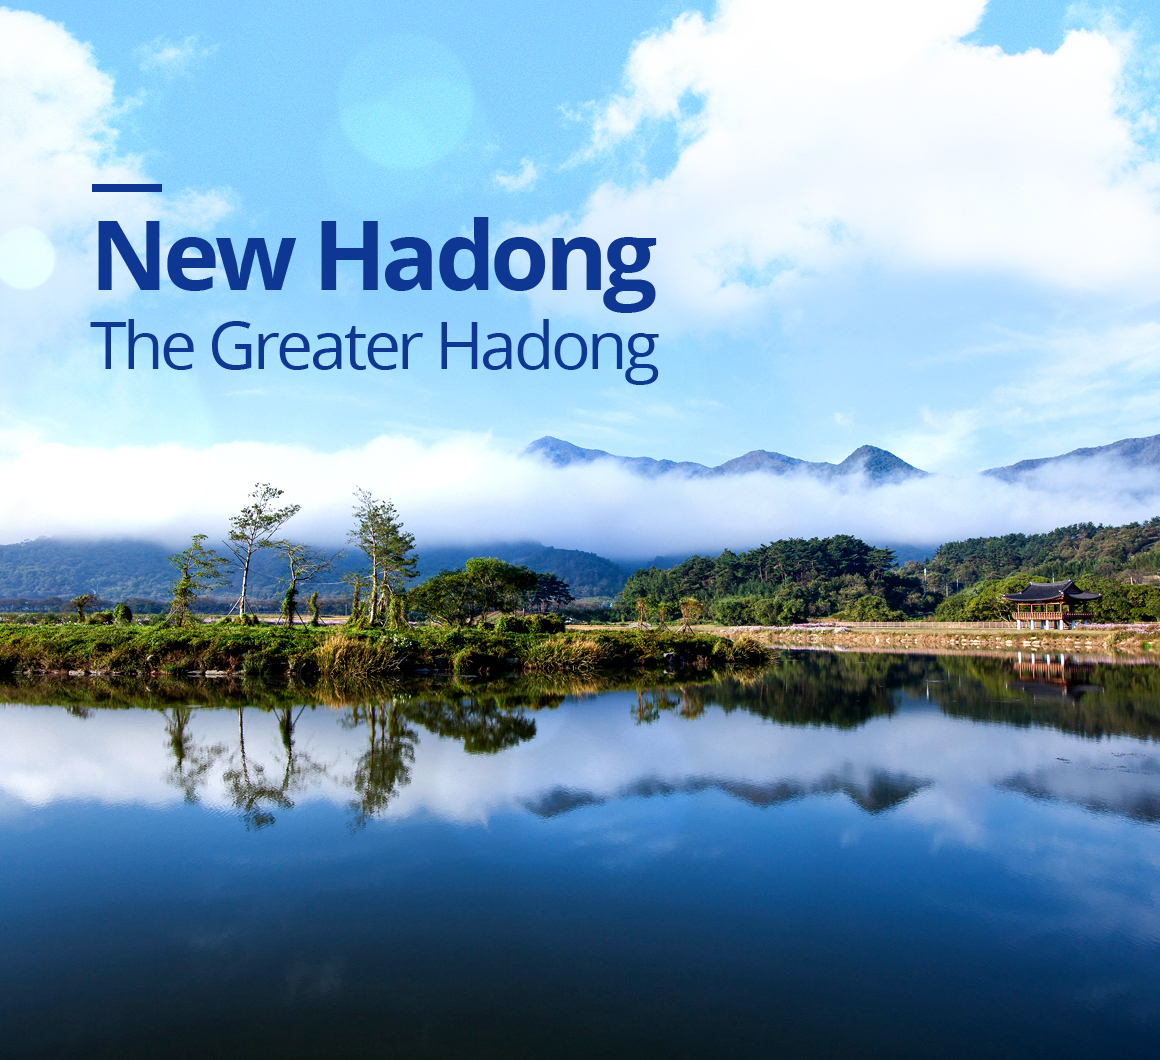 New Hadong. The Greater Hadong